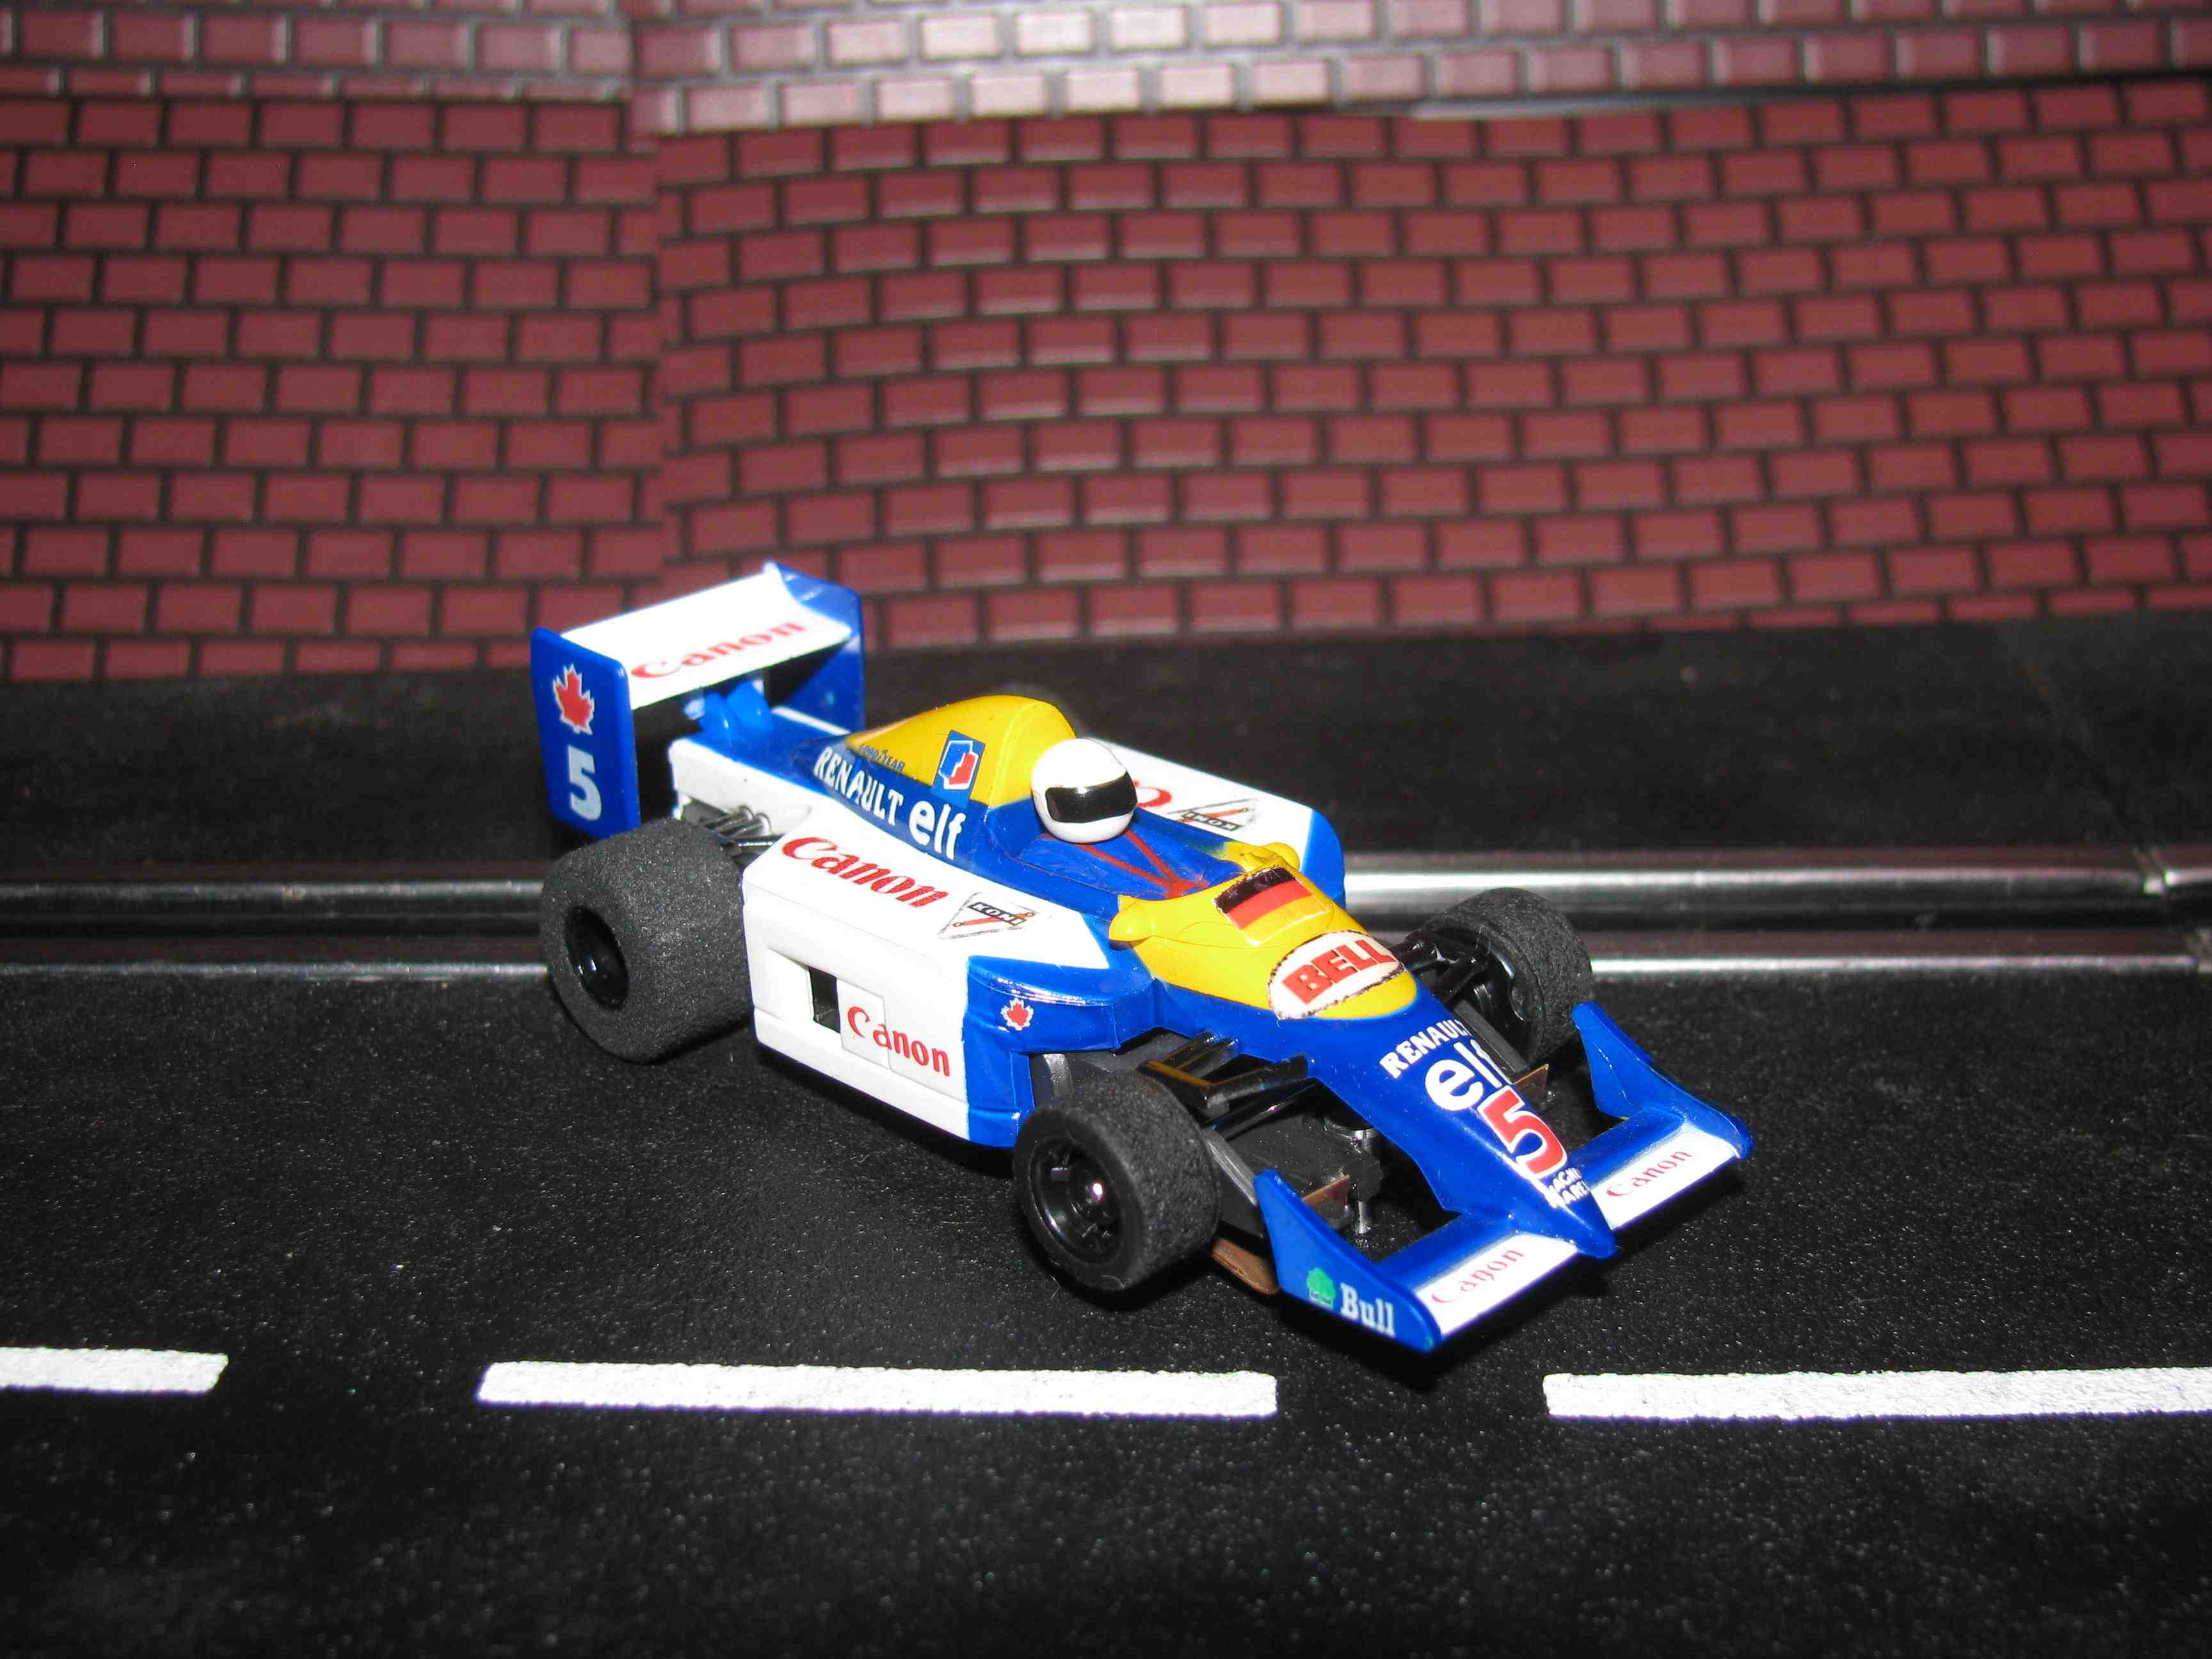 *SOLD* TYCO Renault-elf – Formula 1 - HO Slot Car - Car#5 – W/Guide Post